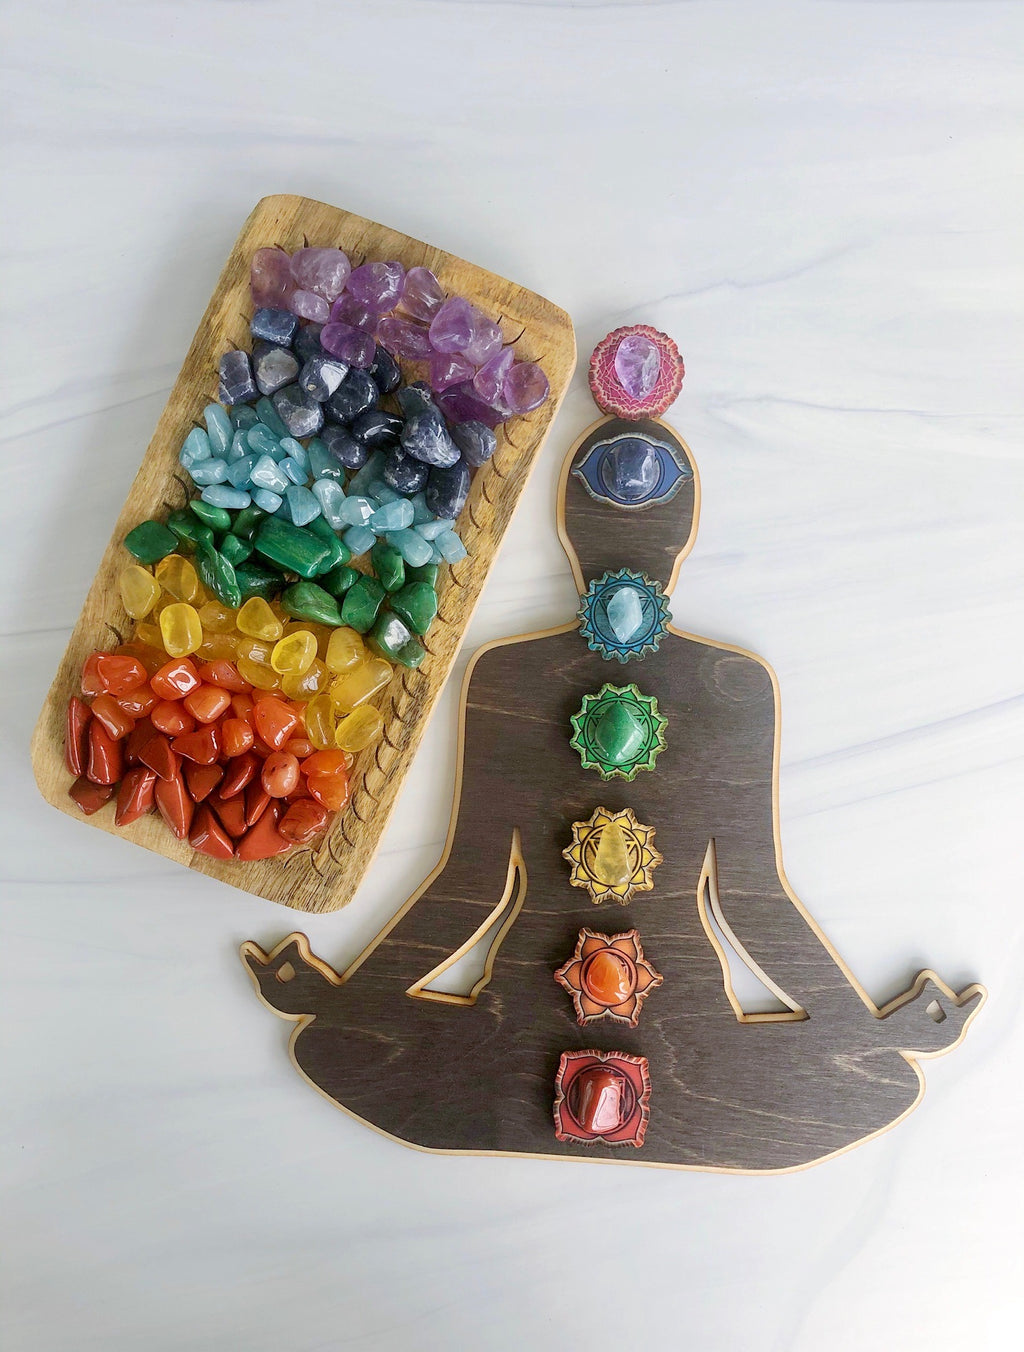 Tumbled Chakra Stones Crystal Kit with Pouch